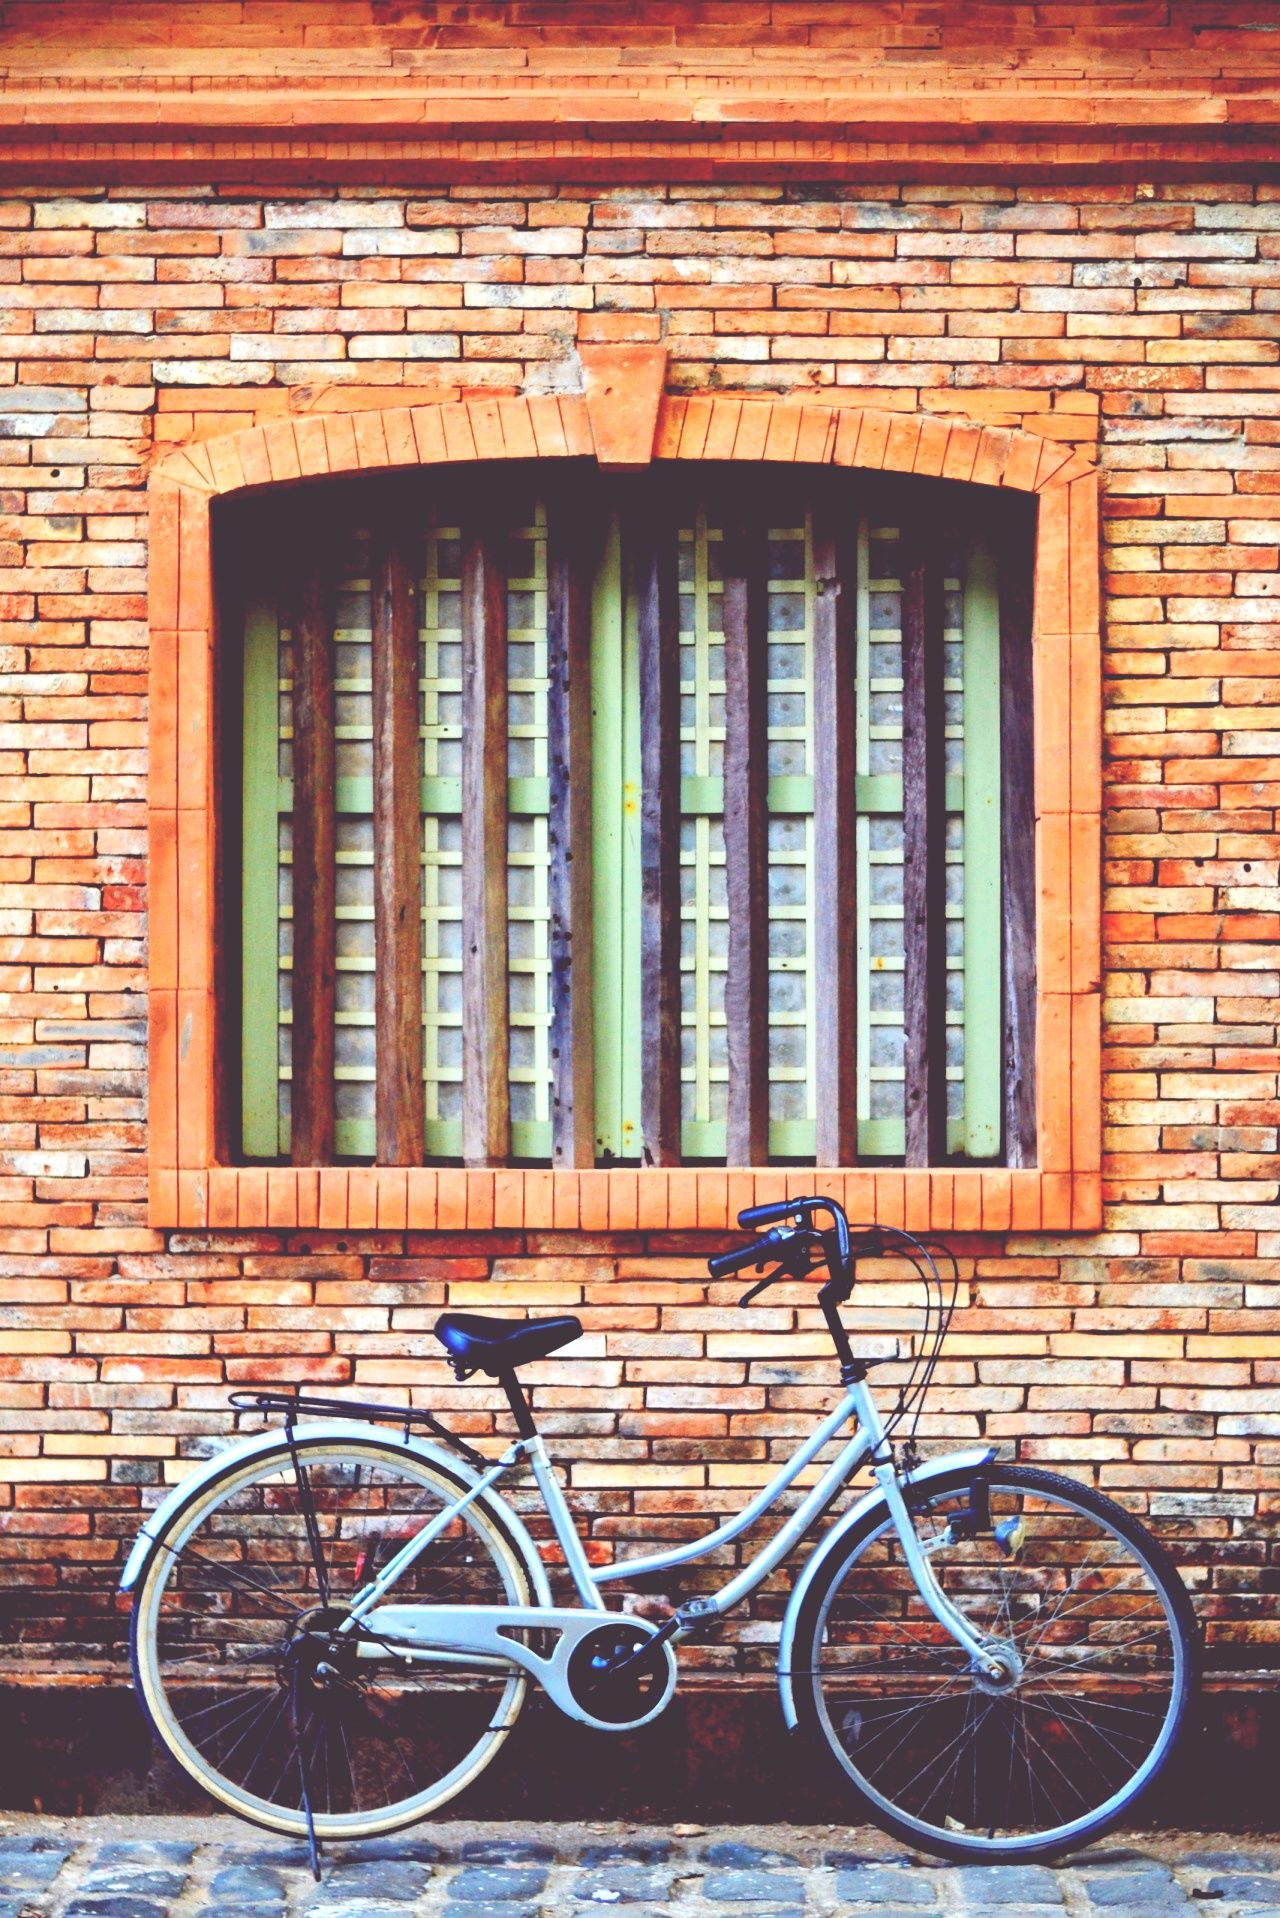 Beautiful stock photos of bike, Architecture, Bicycle, Brick Wall, Building Exterior